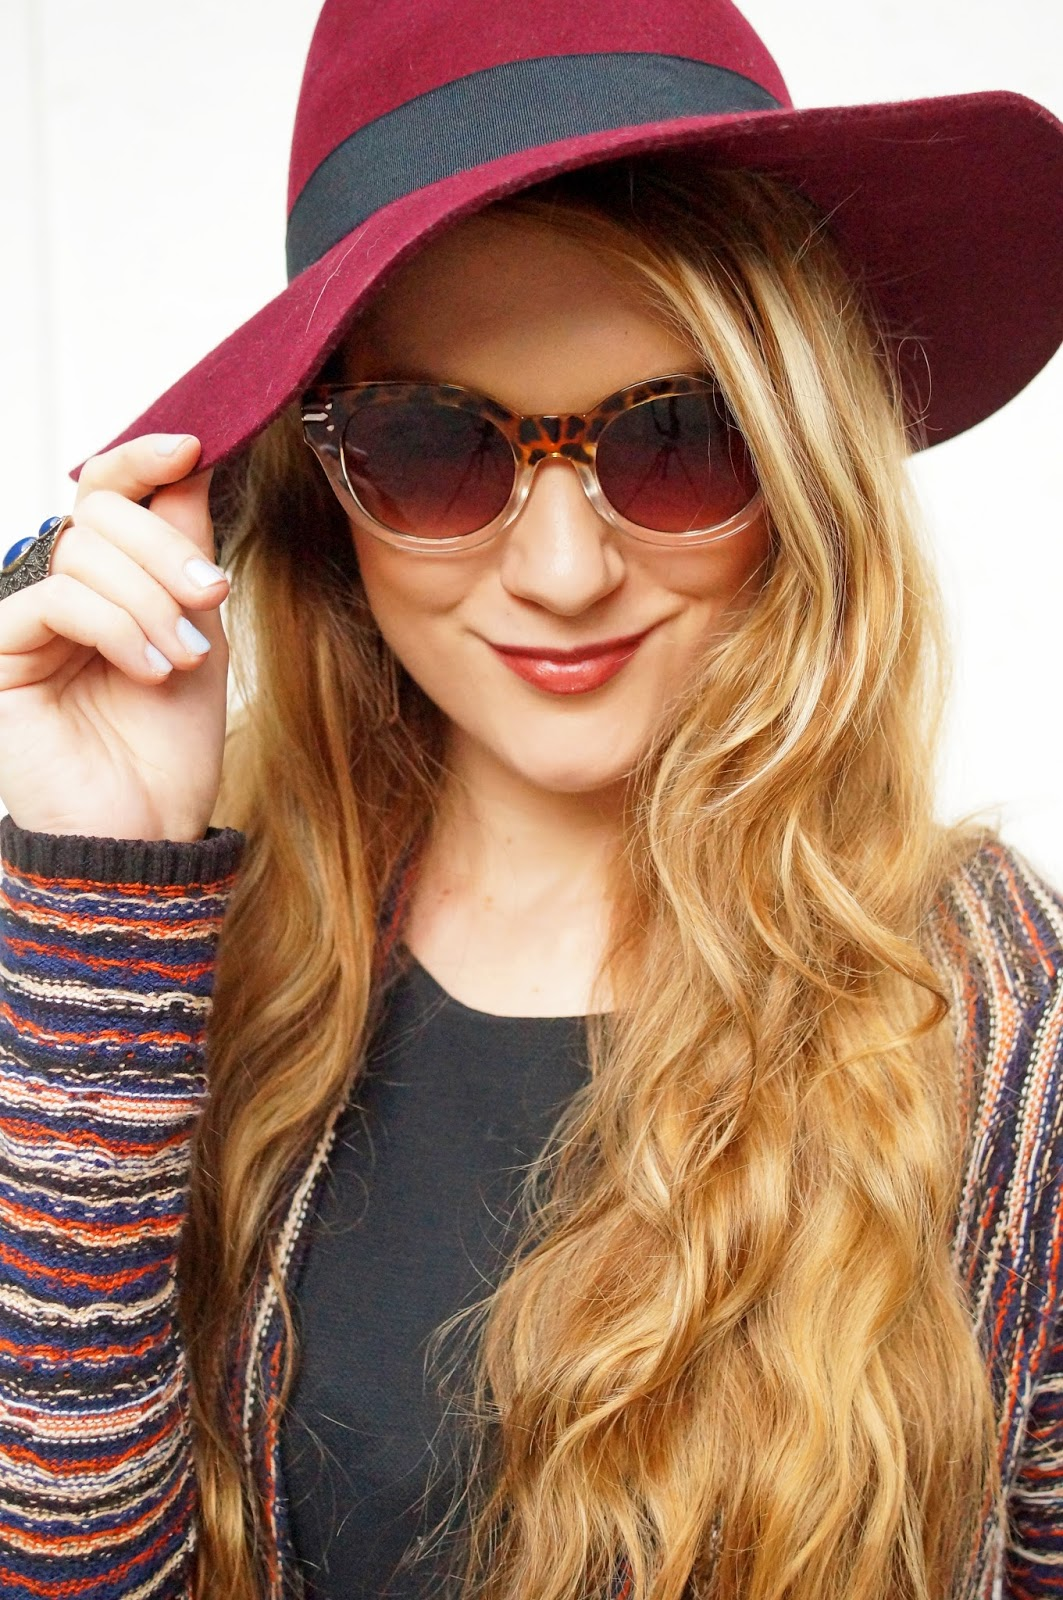 I love hats for Fall, they always look so chic!